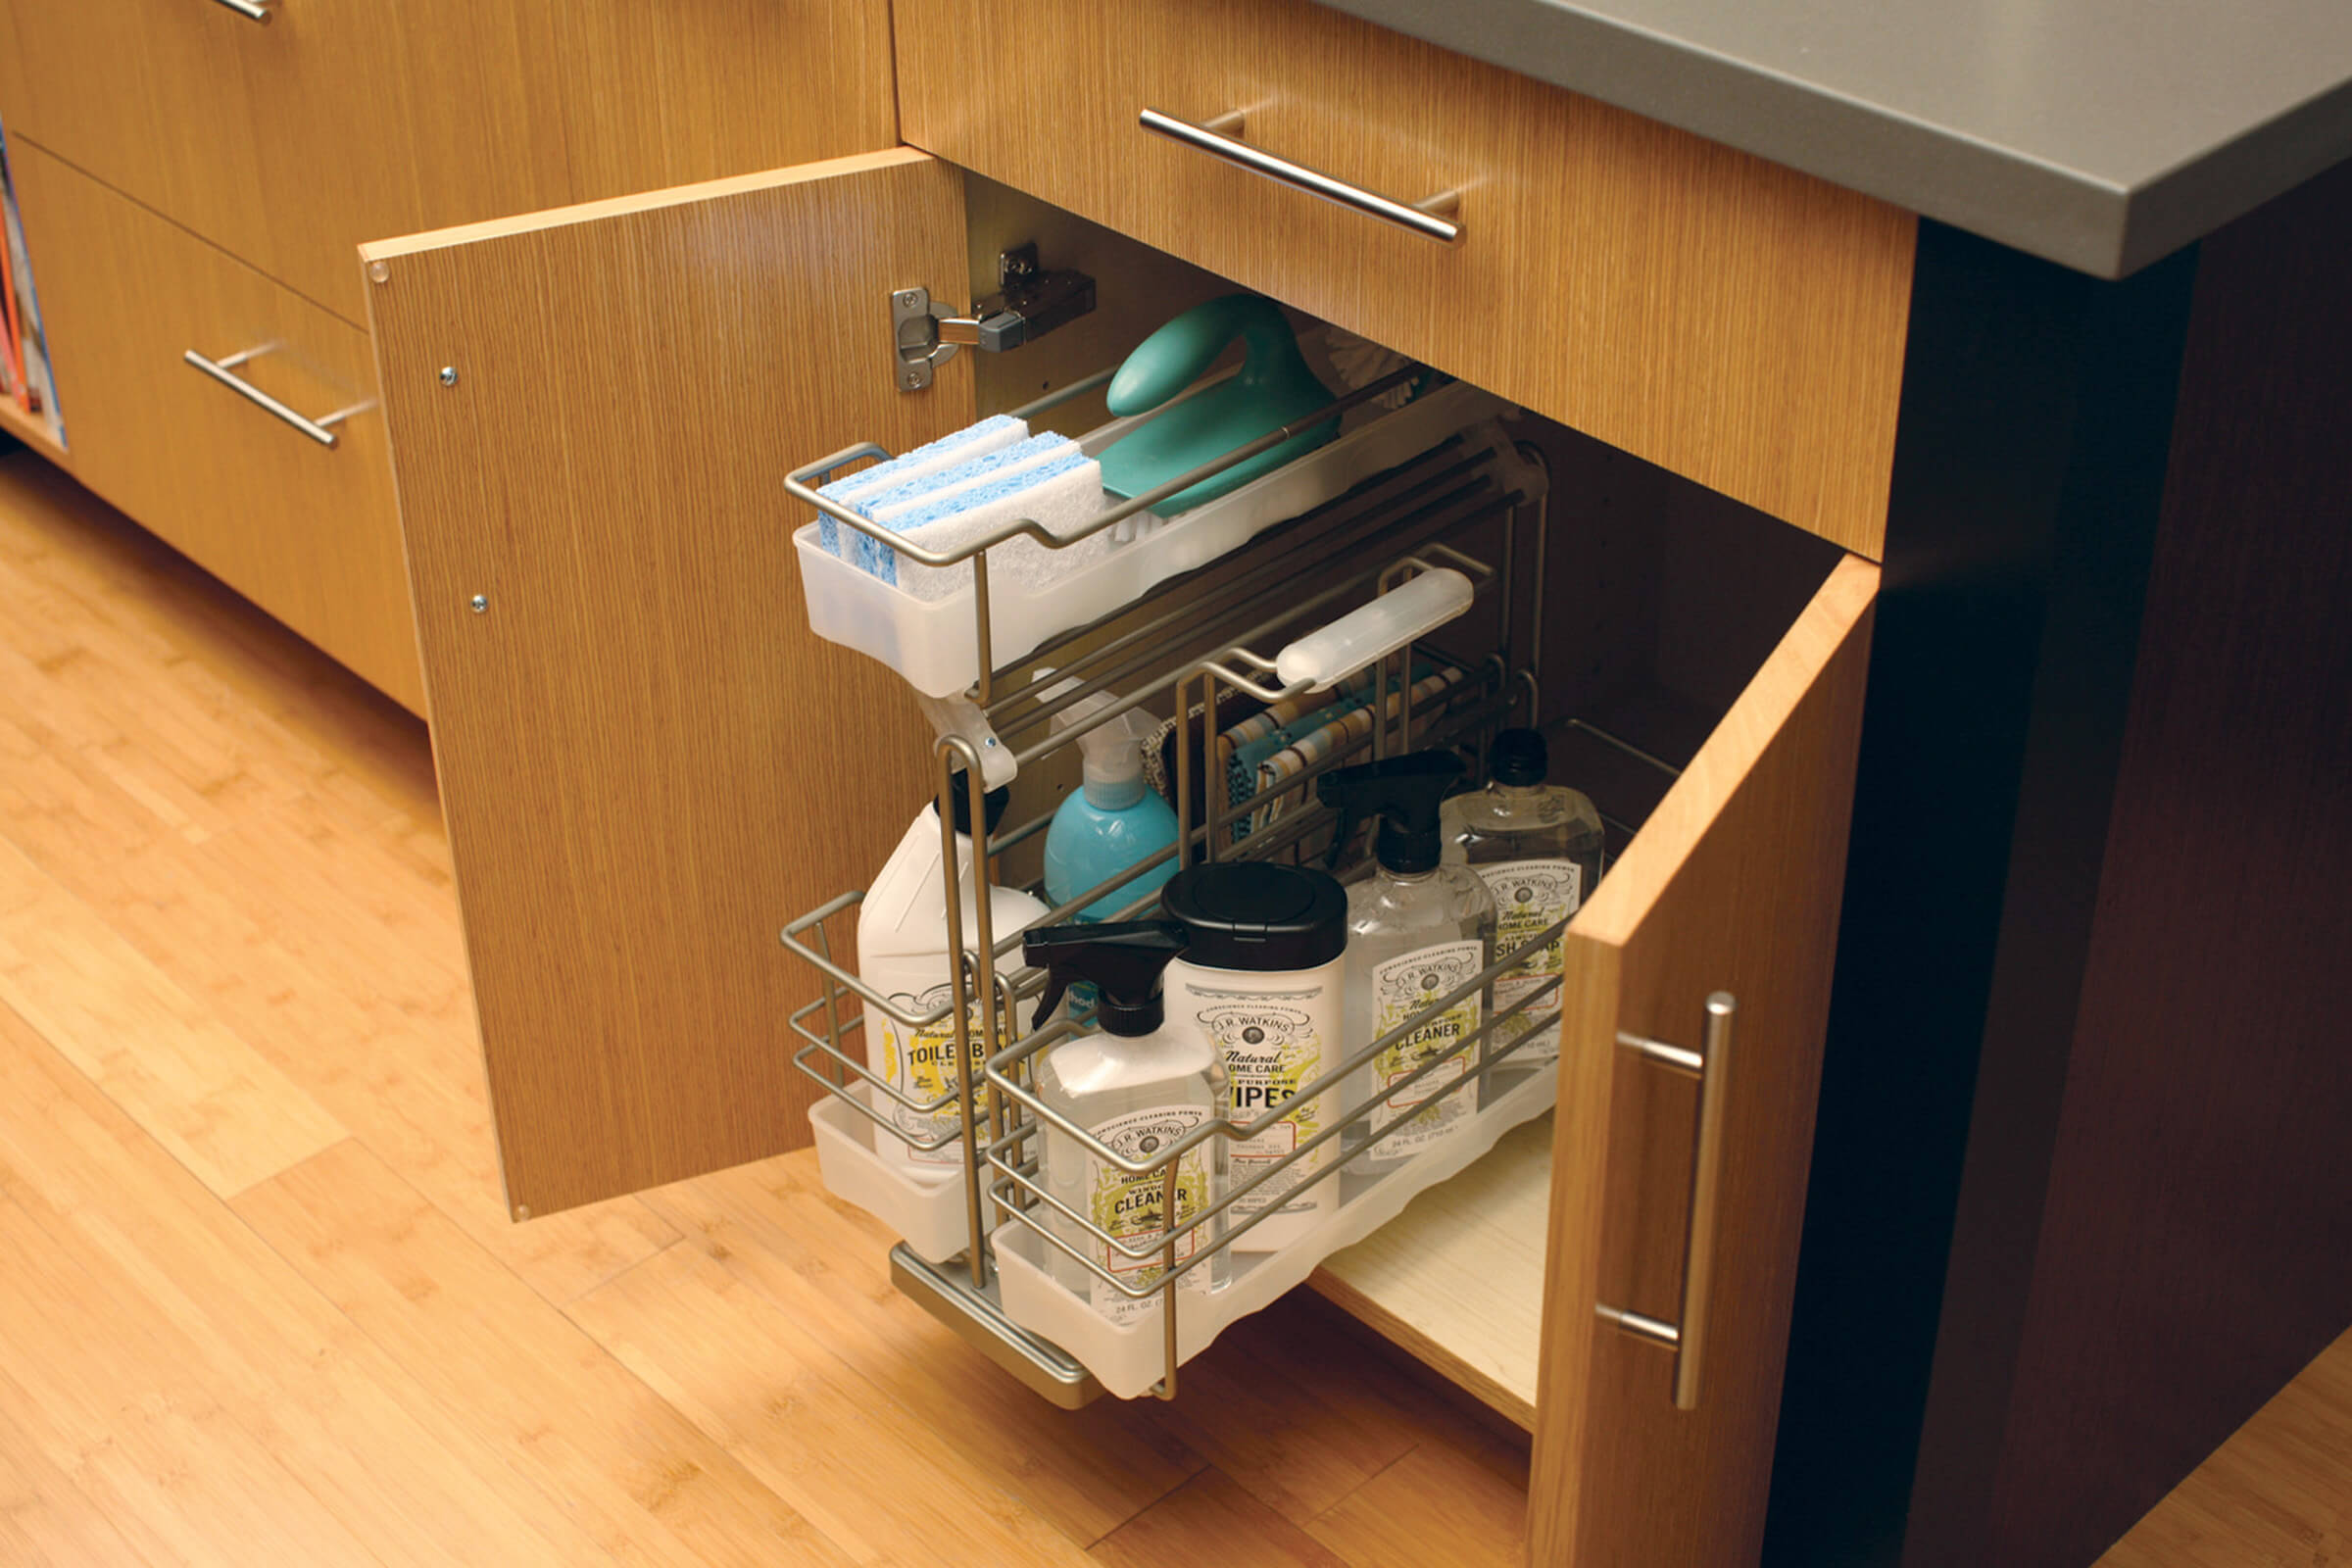 Organize cleaning supplies in our convenient pull-out caddy with detachable, portable basket (SBPOC) from Dura Supreme Cabinetry.